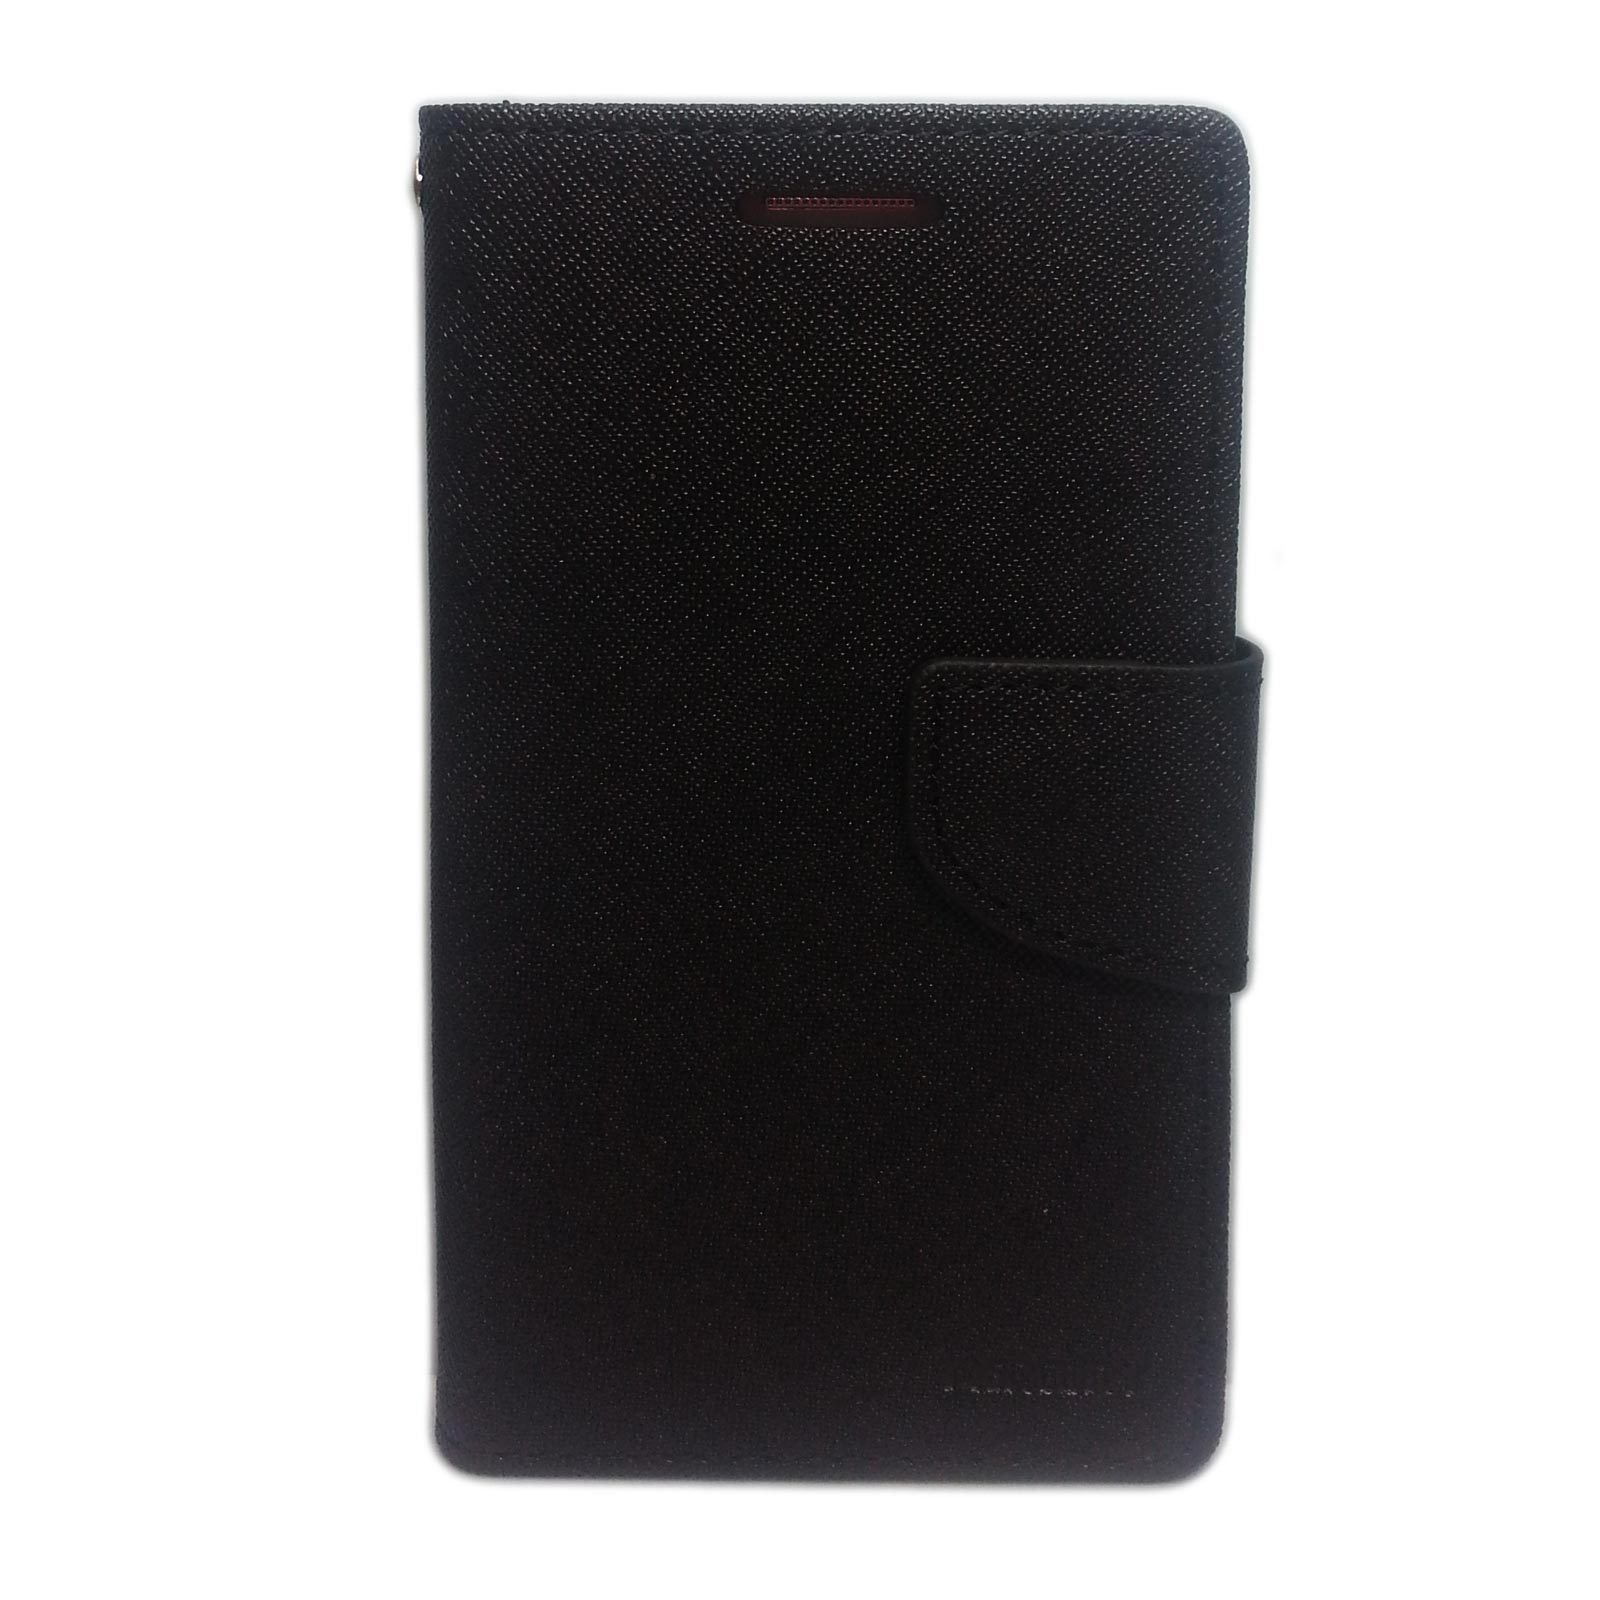 Book Cover Goospery Samsung I Black : Goospery cover case for samsung galaxy note black